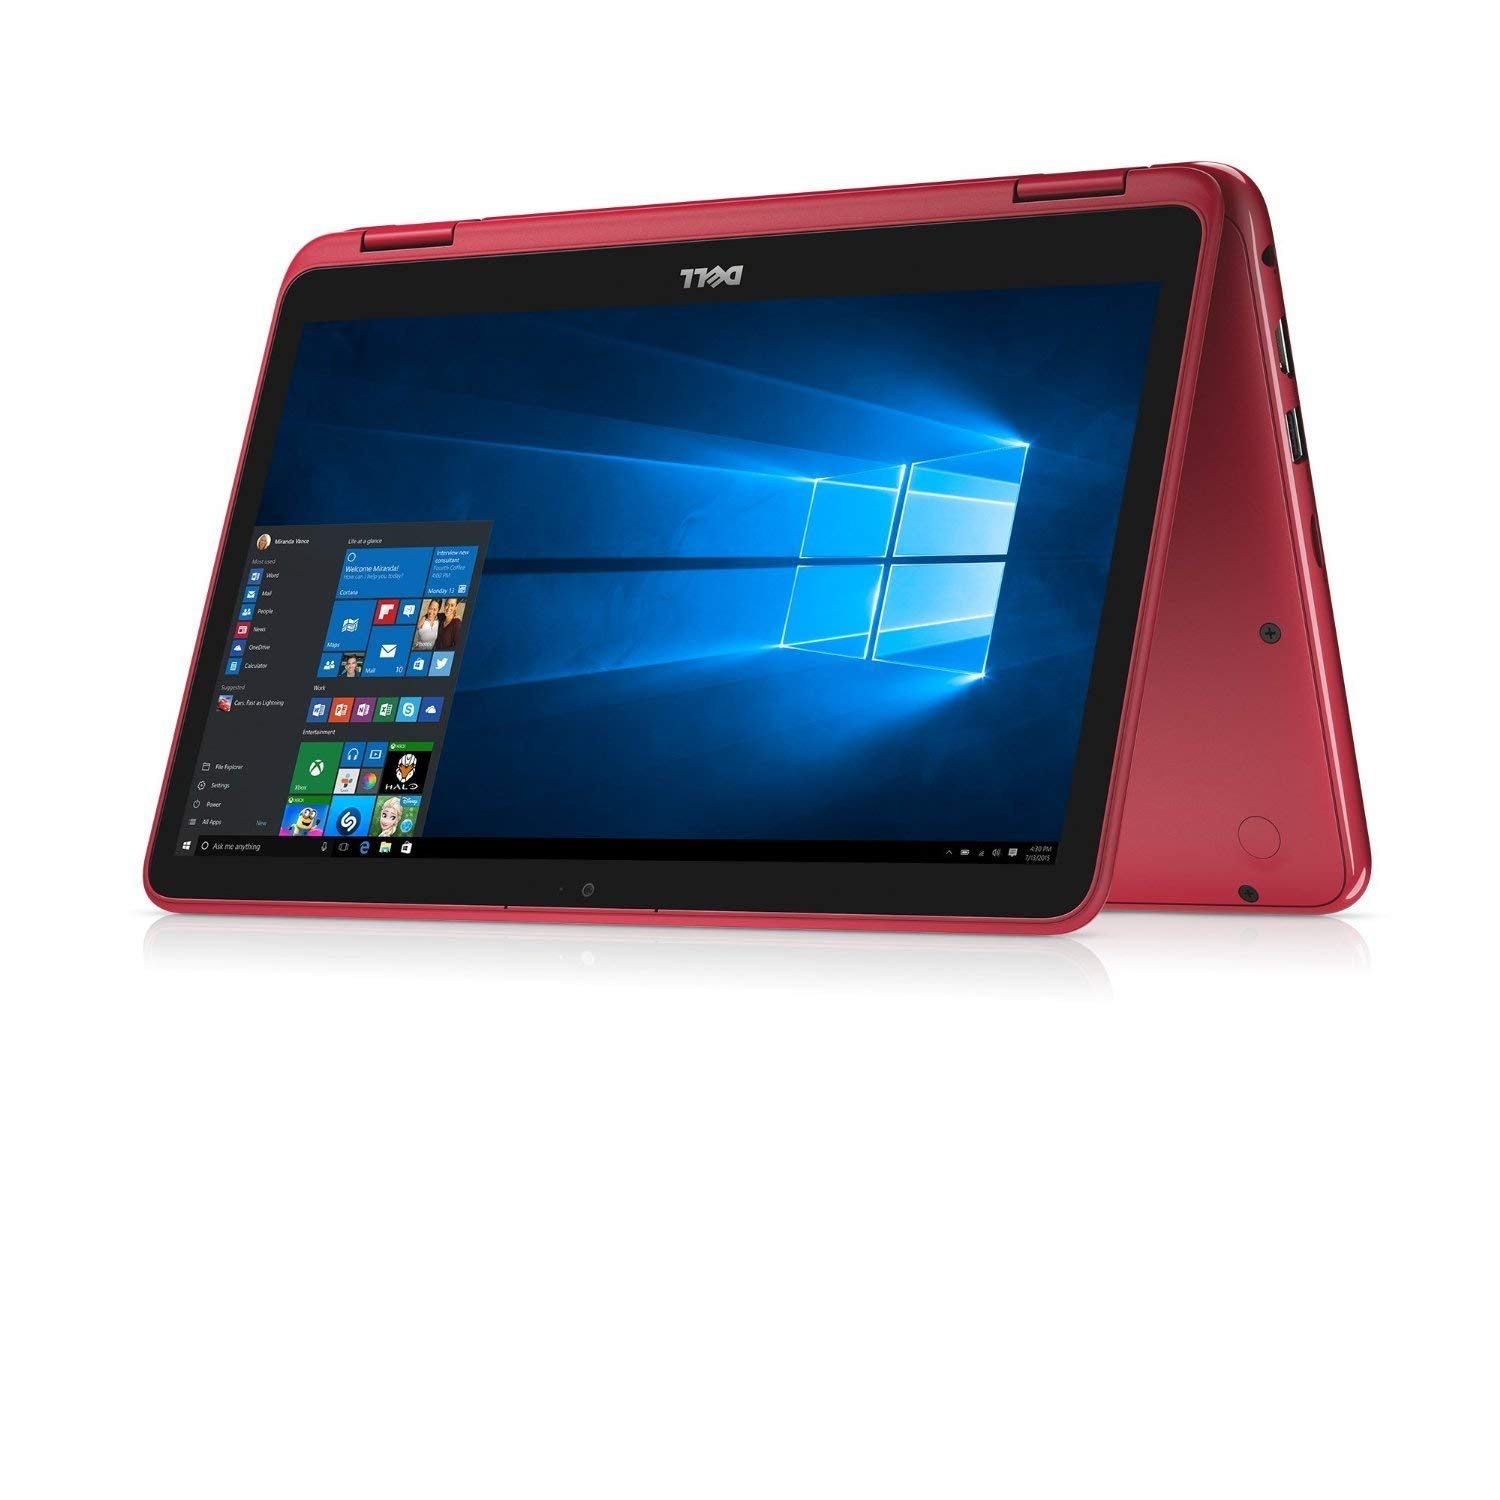 """2019 Dell Inspiron 11.6"""" Touchscreen 2-in-1 Laptop Computer, AMD A6-9220e 1.6 GHz Up to 2.4GHz, 4GB DDR4 SDRAM, 64GB eMMC SSD, WiFi, Bluetooth, USB 3.1, HDMI, Red, Windows 10 S"""